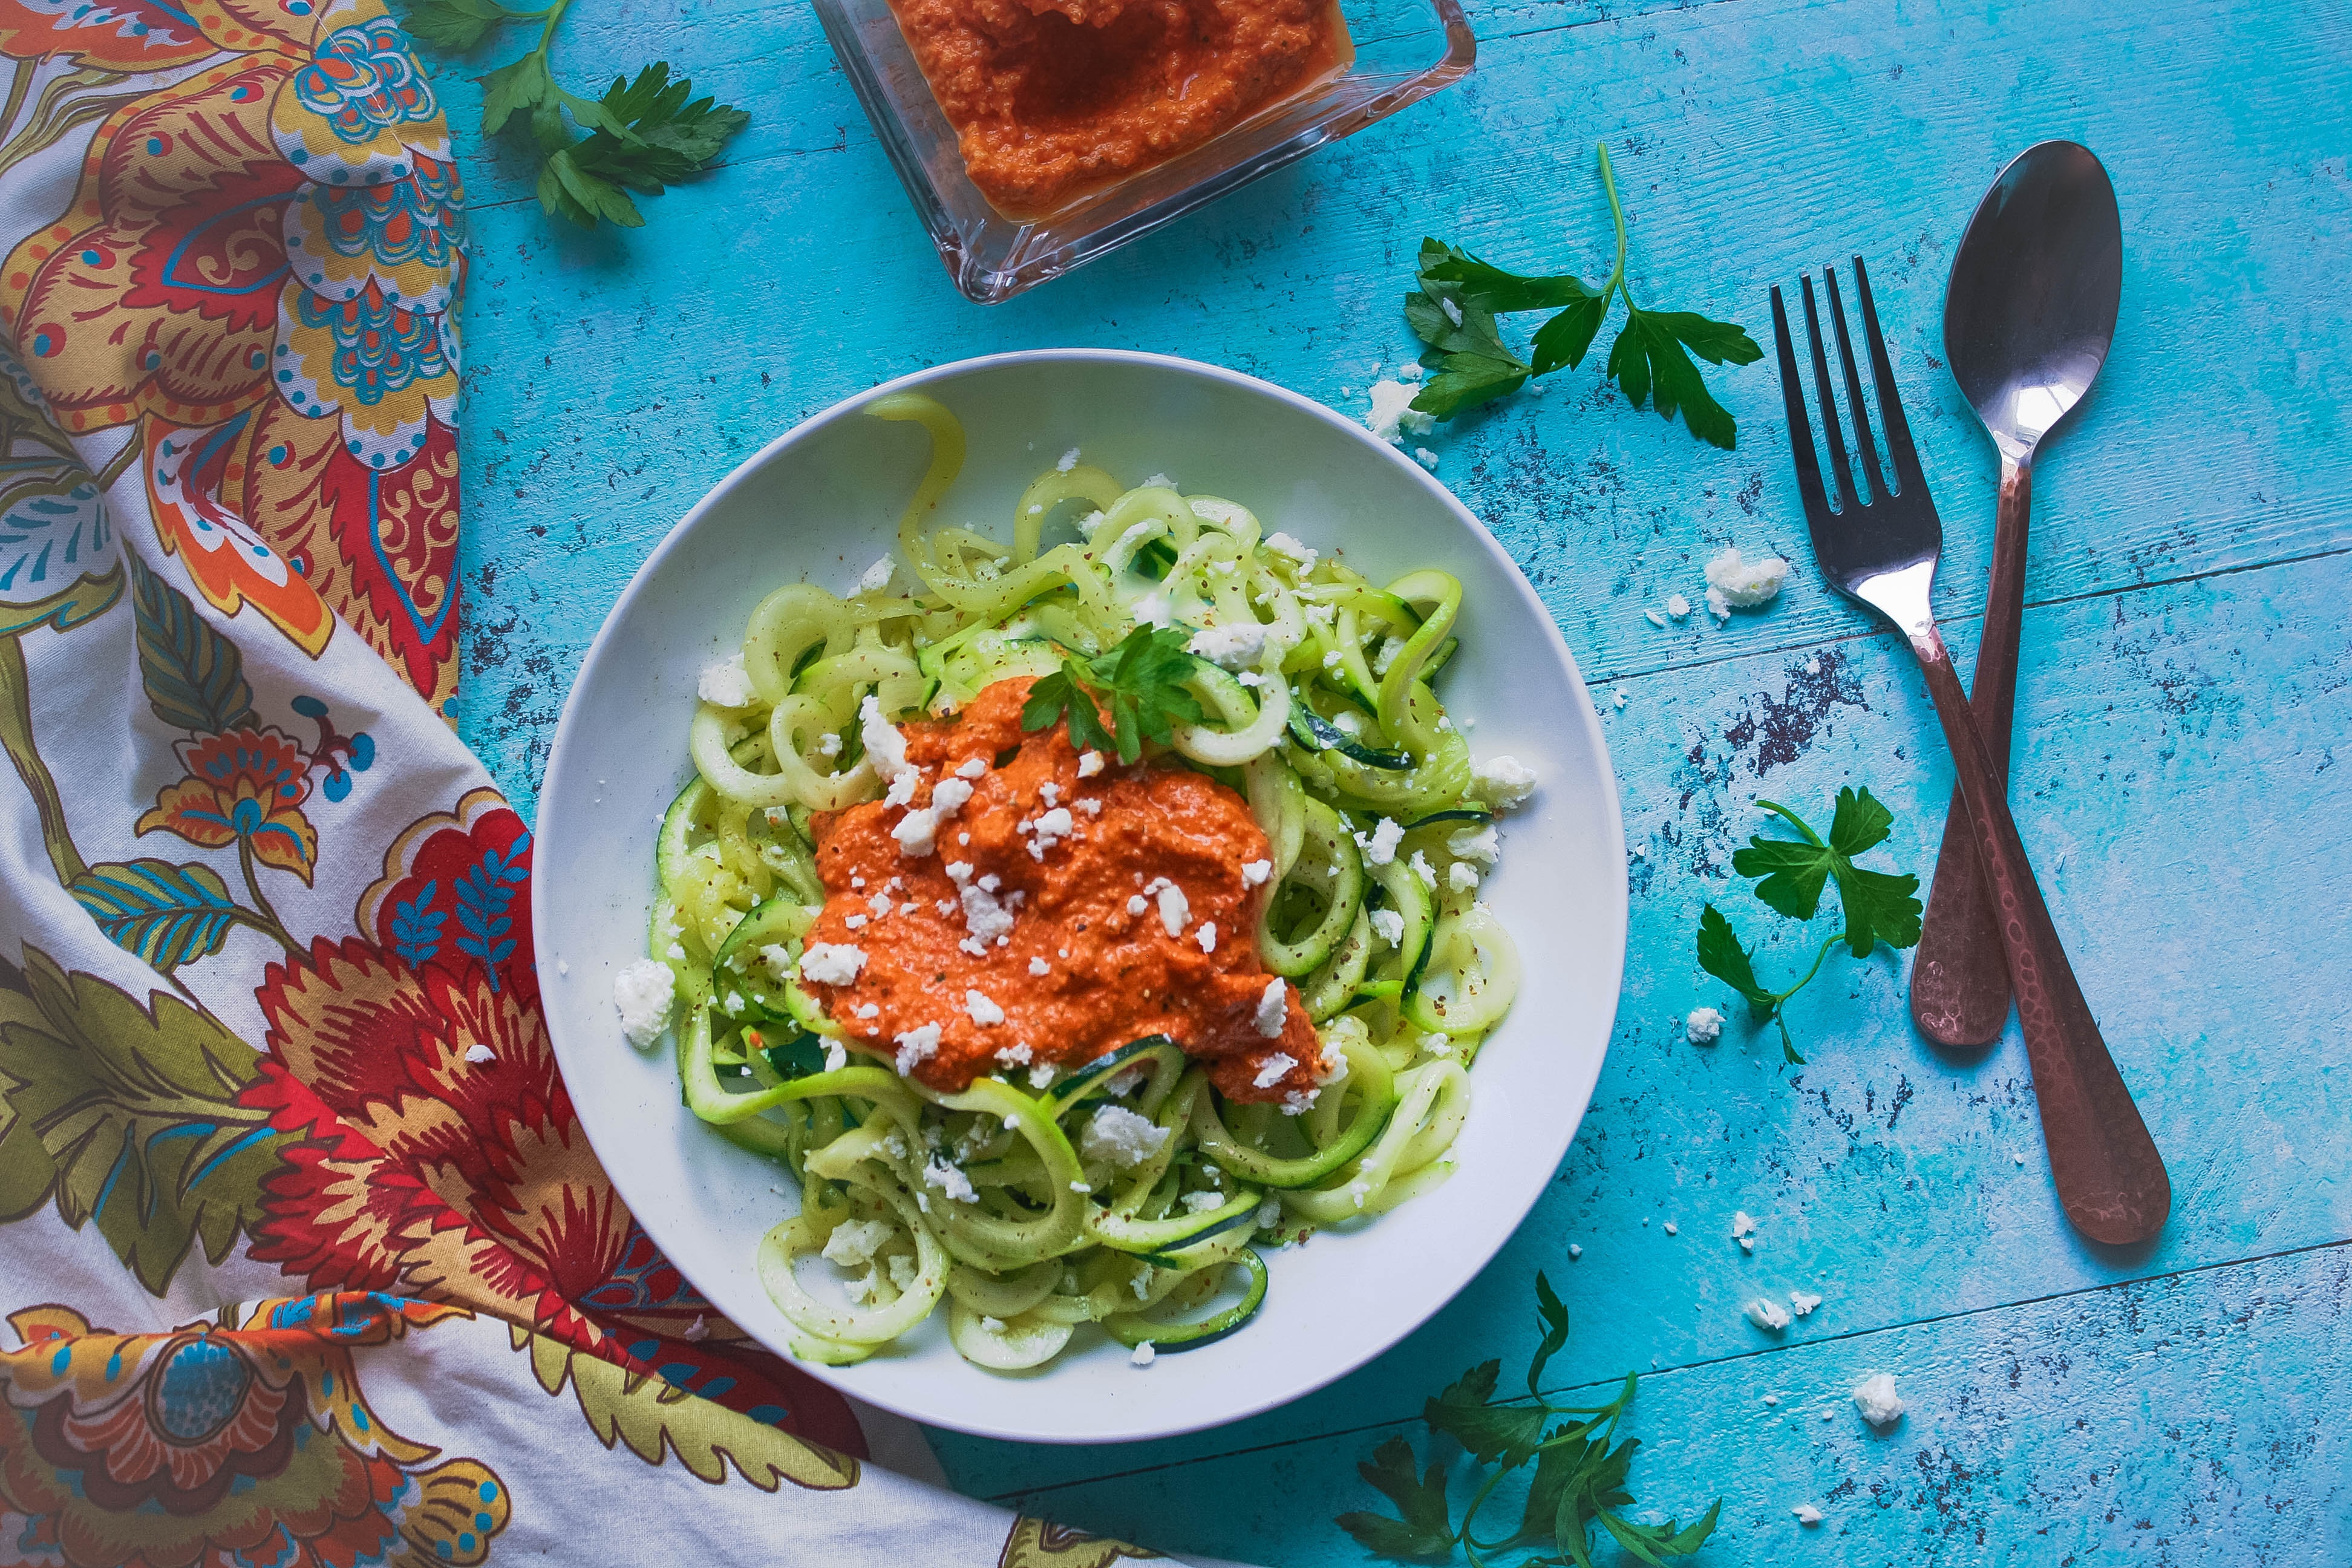 Low carb zoodles with Romesco sauce is a healthy meal you should make soon. Low carb zoodles with Romesco sauce is a delight, and it's so easy to make, too.